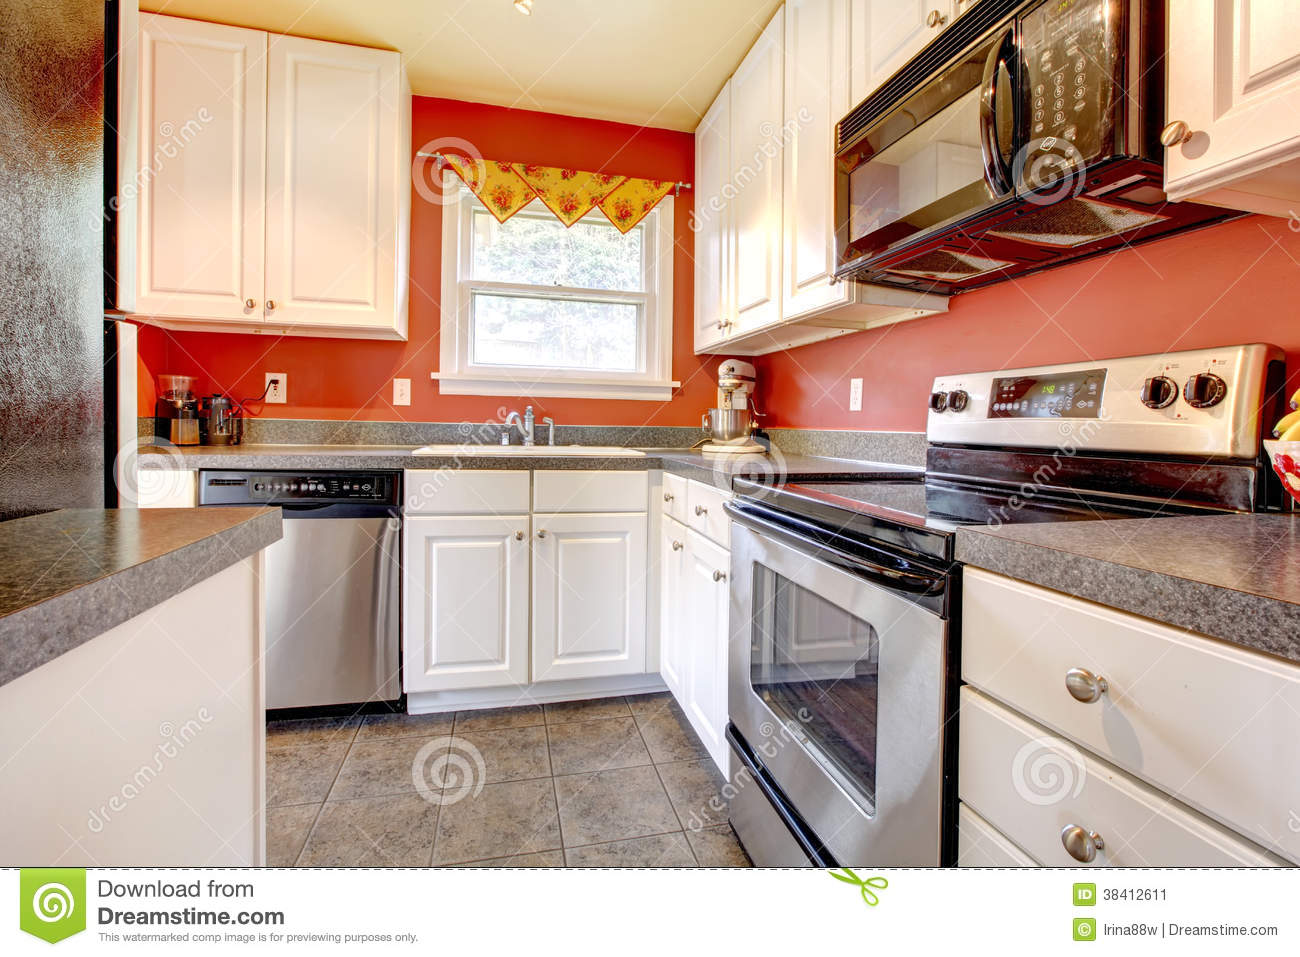 Cozy kitchen room with red wall and white cabinets stock for White cabinets red walls kitchen